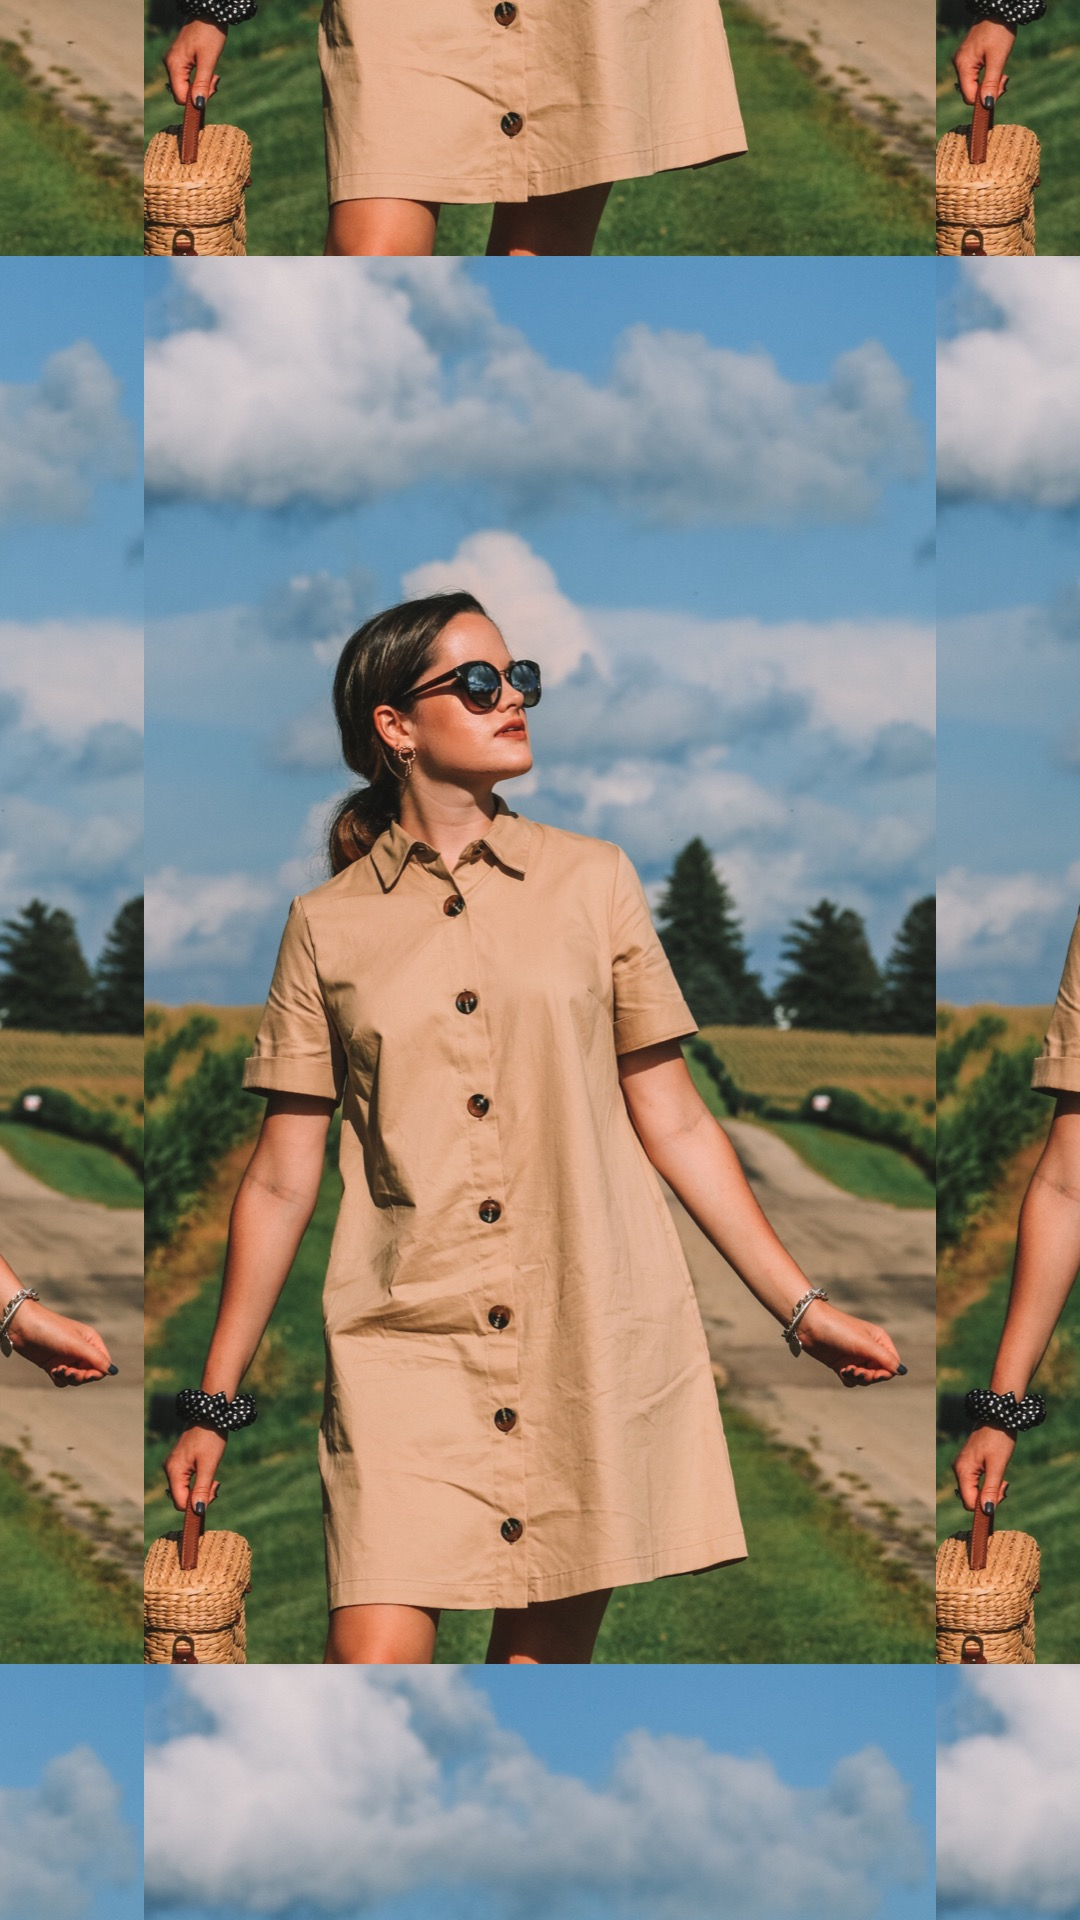 Fashion blogger Kathleen Harper wearing a khaki button-down shirtdress for fall 2020.